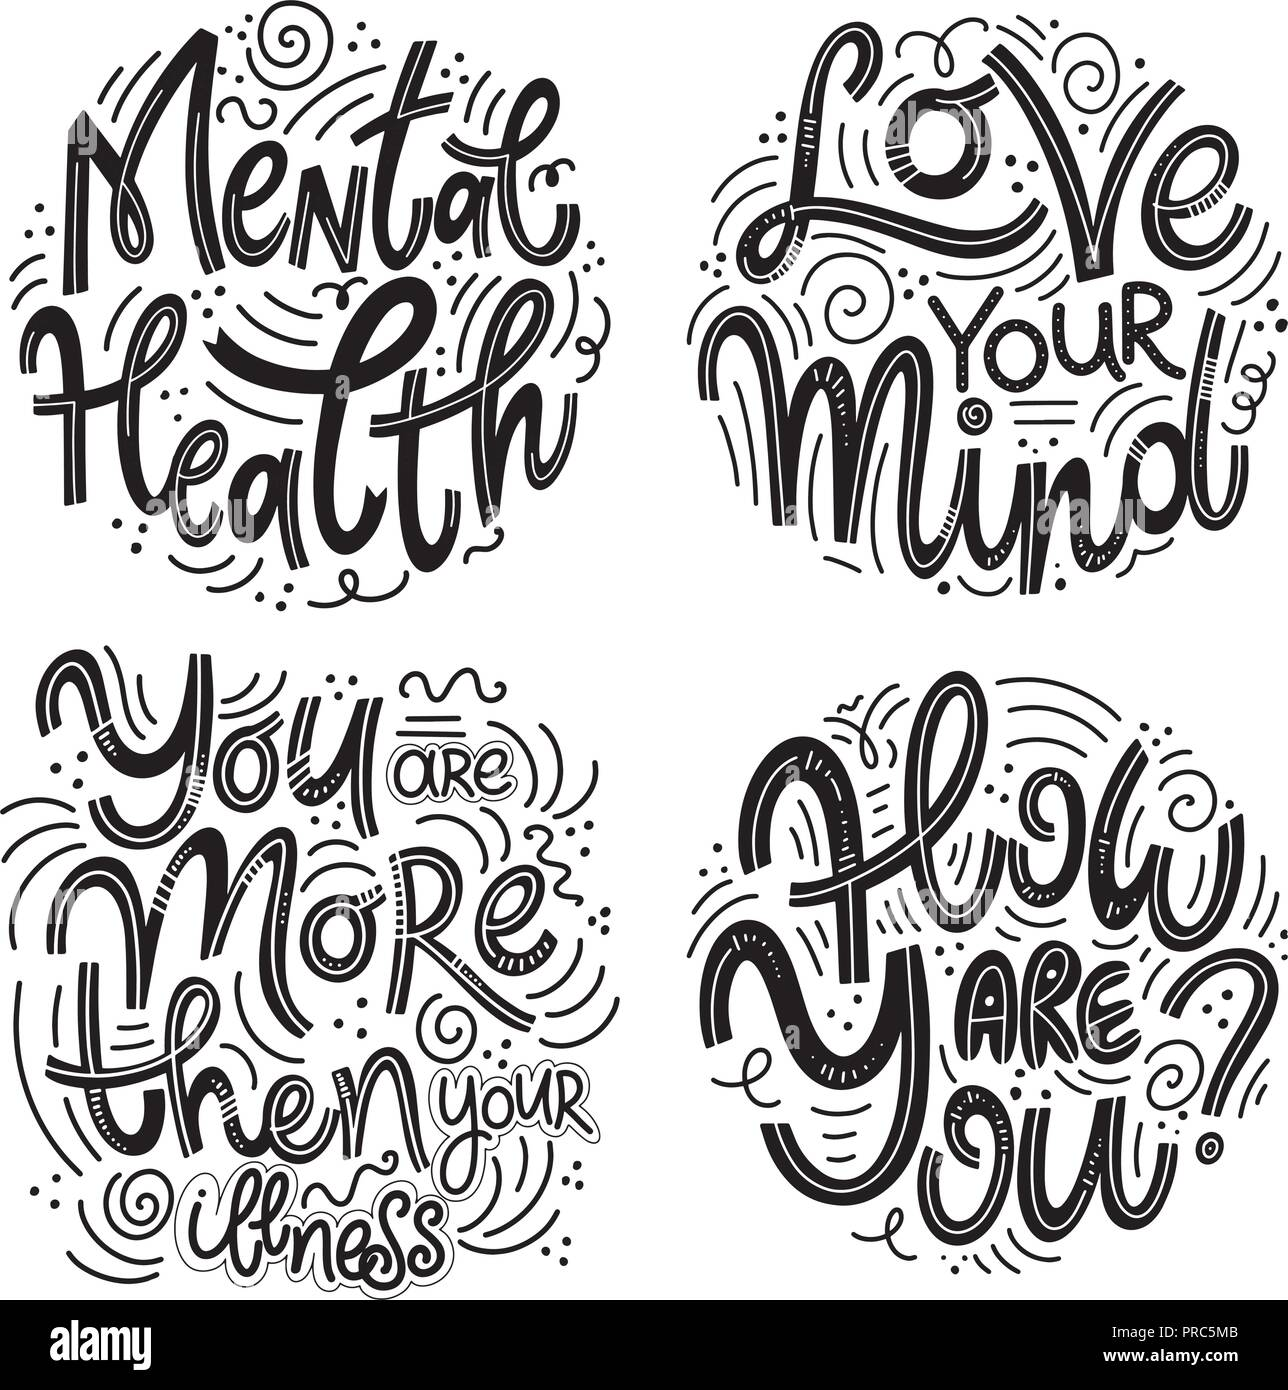 Motivational And Inspirational Quotes Sets For Mental Health Day